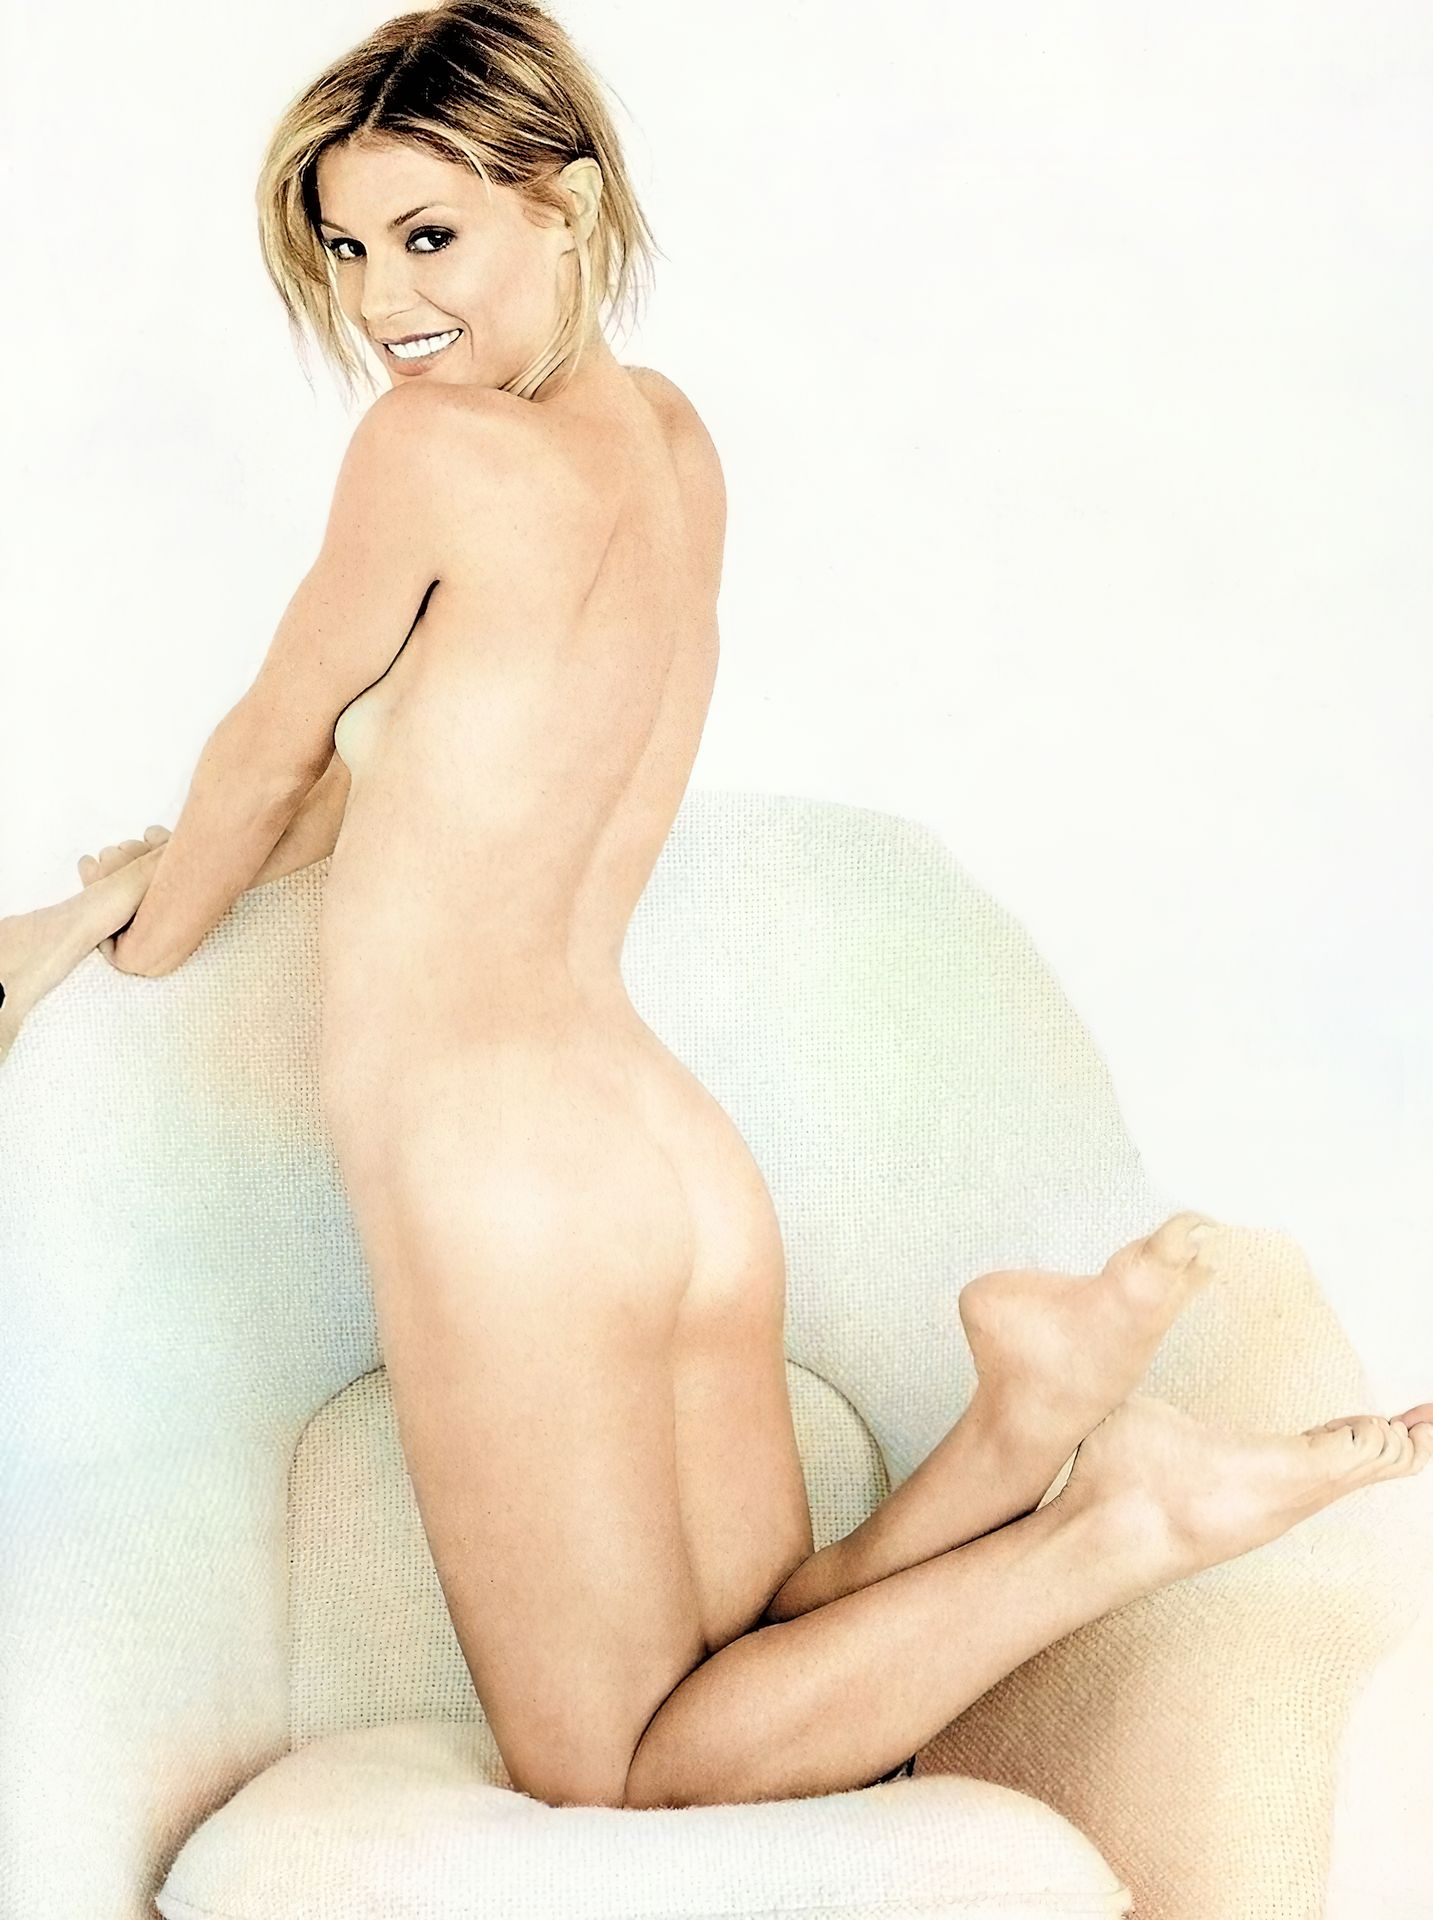 America olivo nude sex in the shower julie bowen hot not